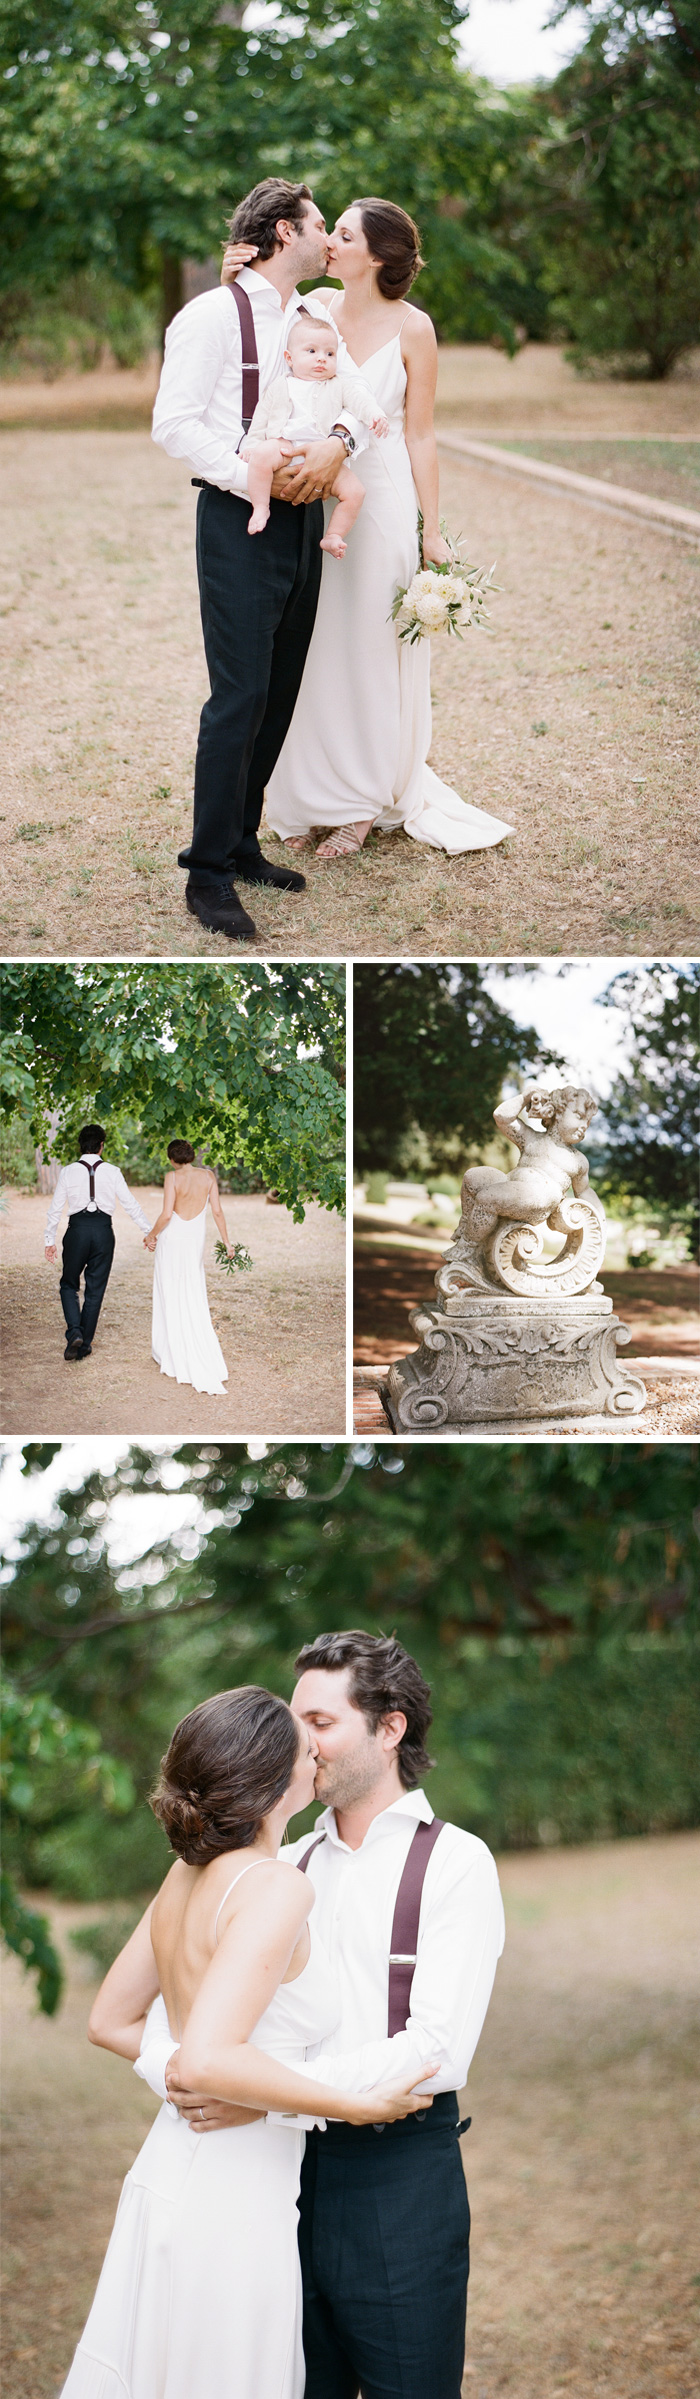 Amelie & Laurent steal kisses and embraces on the grounds of the chateau's estate in Provence, France; photos by Sylvie Gil